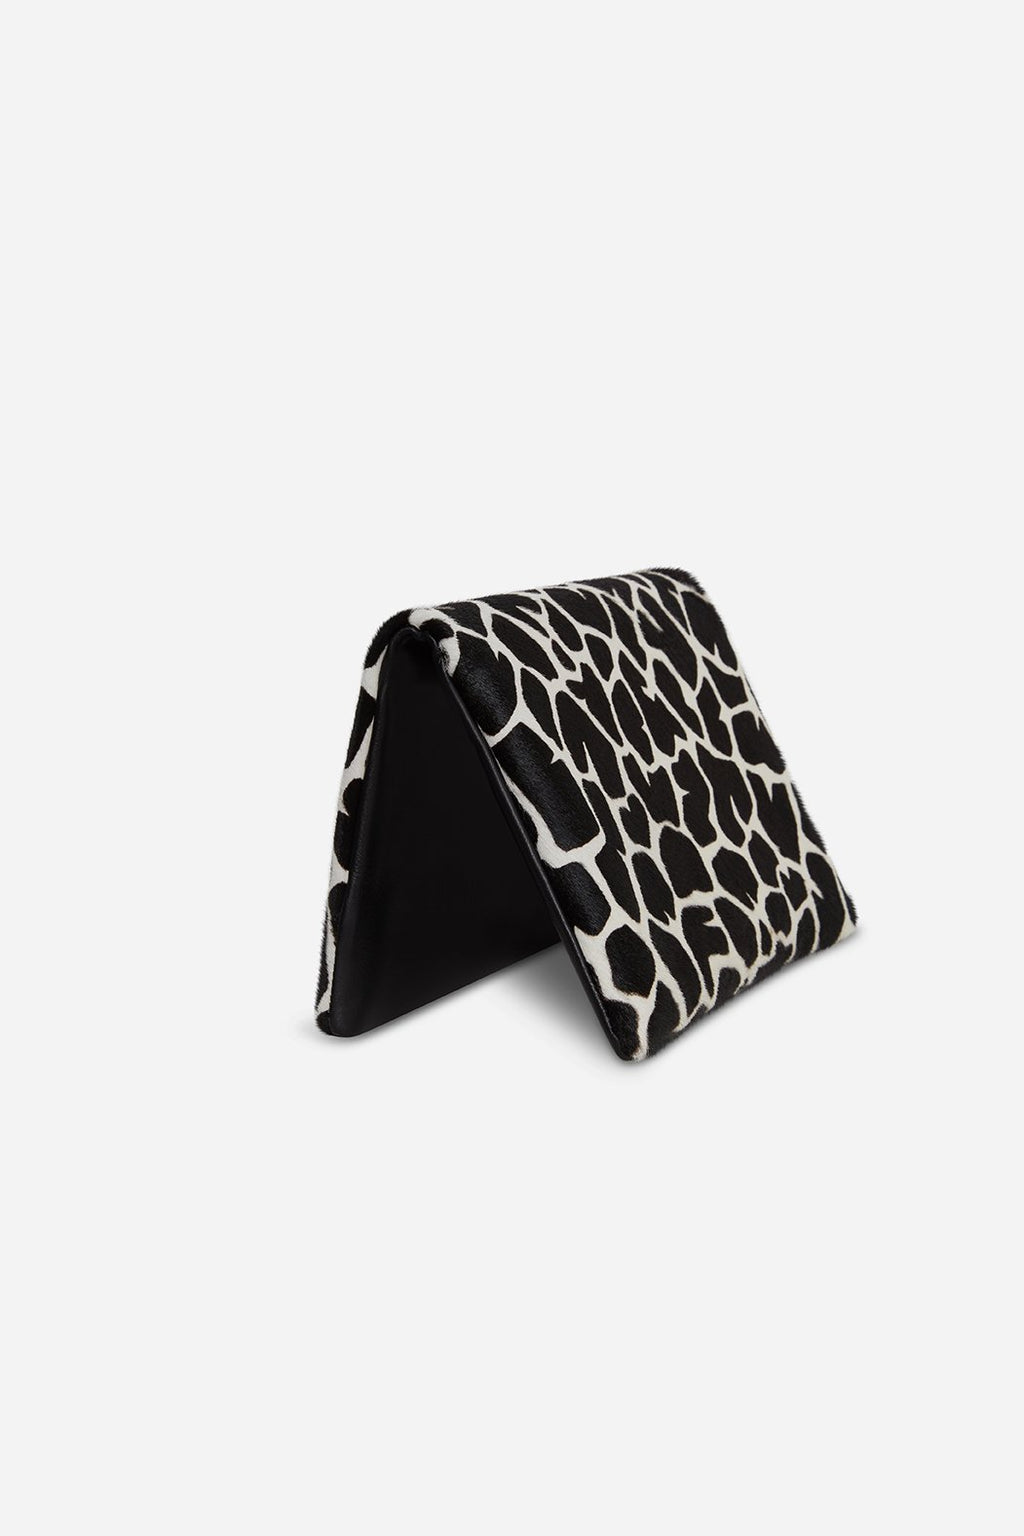 Giulia Maresca Laura Animal Print Clutch